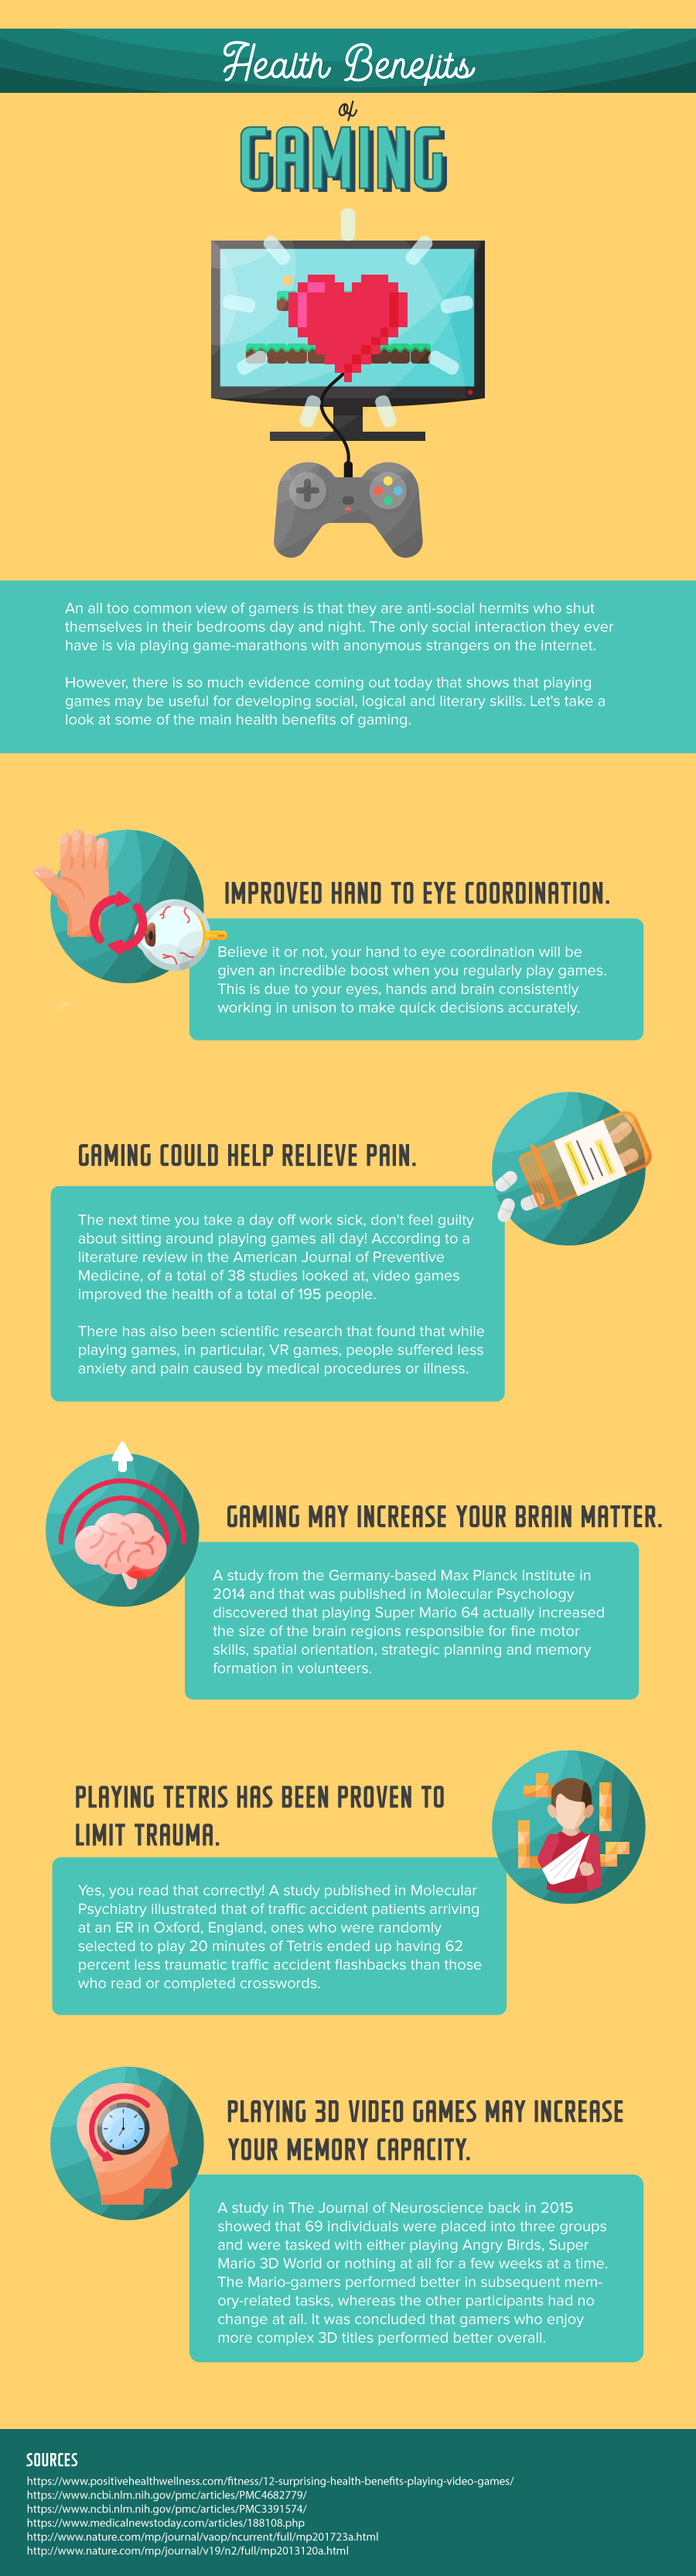 Benefits Of Gaming What Research Shows >> Artshine The Health Benefits Of Gaming Artshine